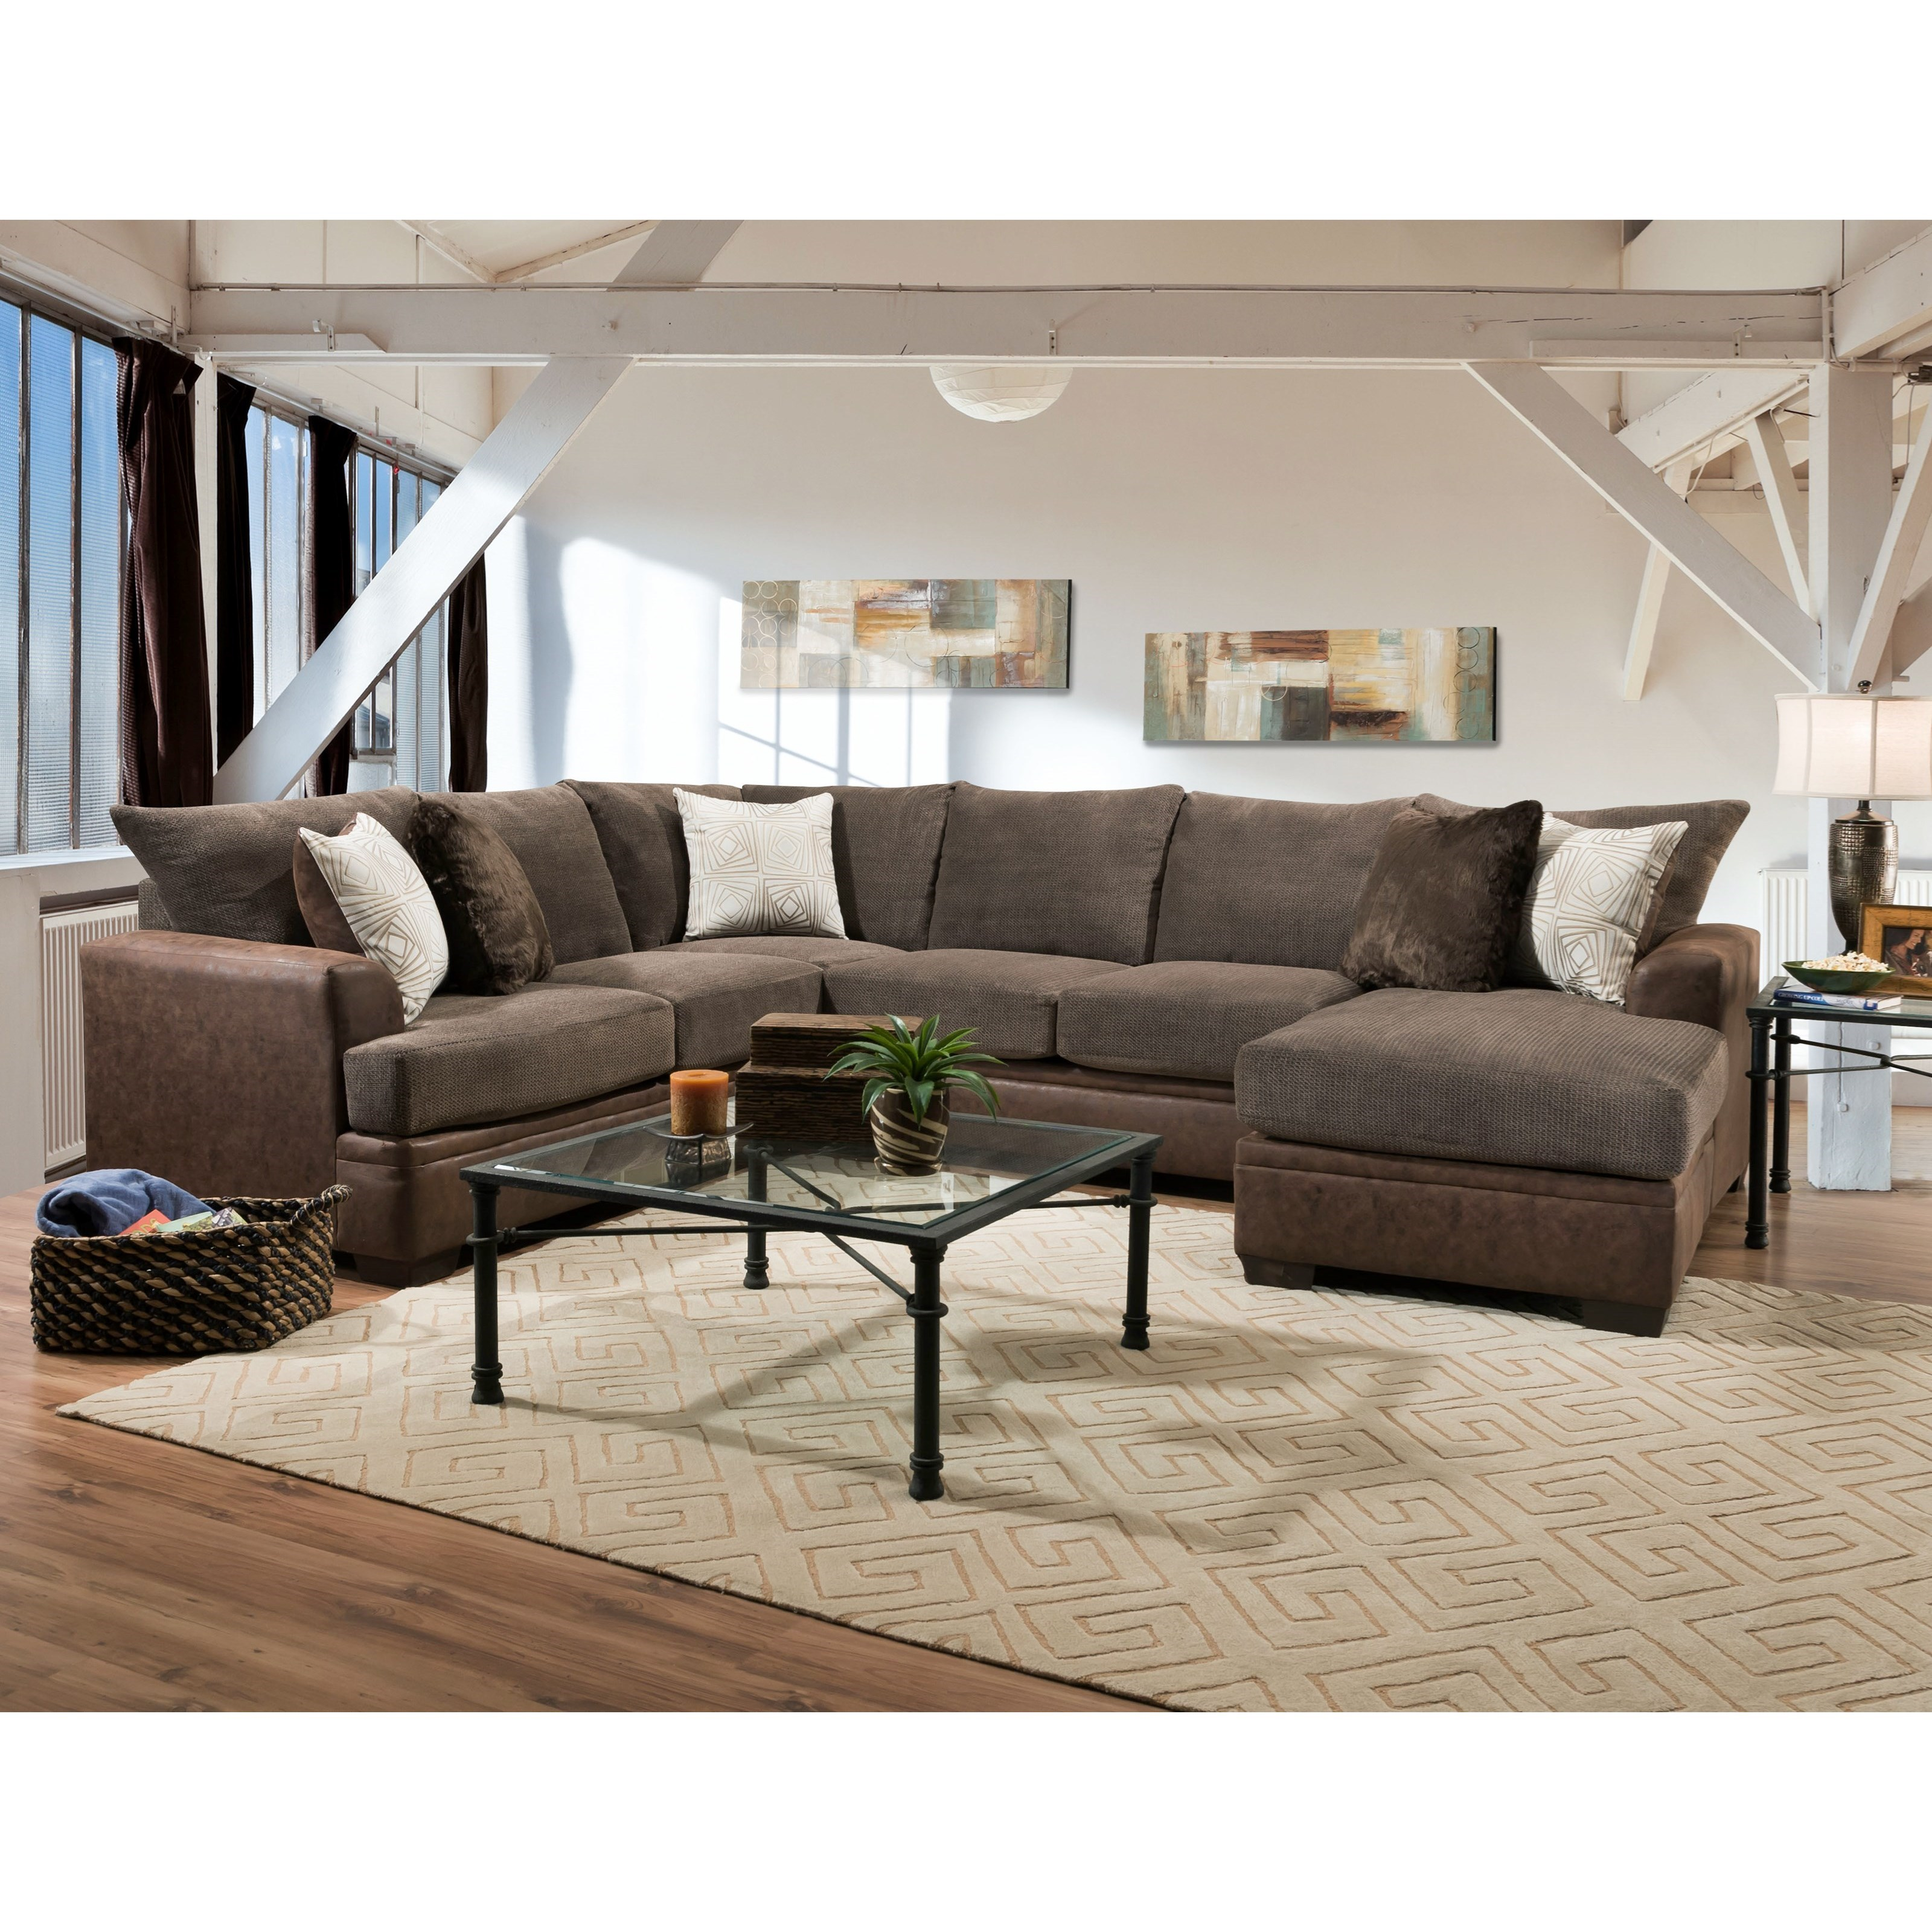 Peak Living 6800 Sectional Sofa With Right Side Chaise Prime Brothers Furniture Sectional Sofas